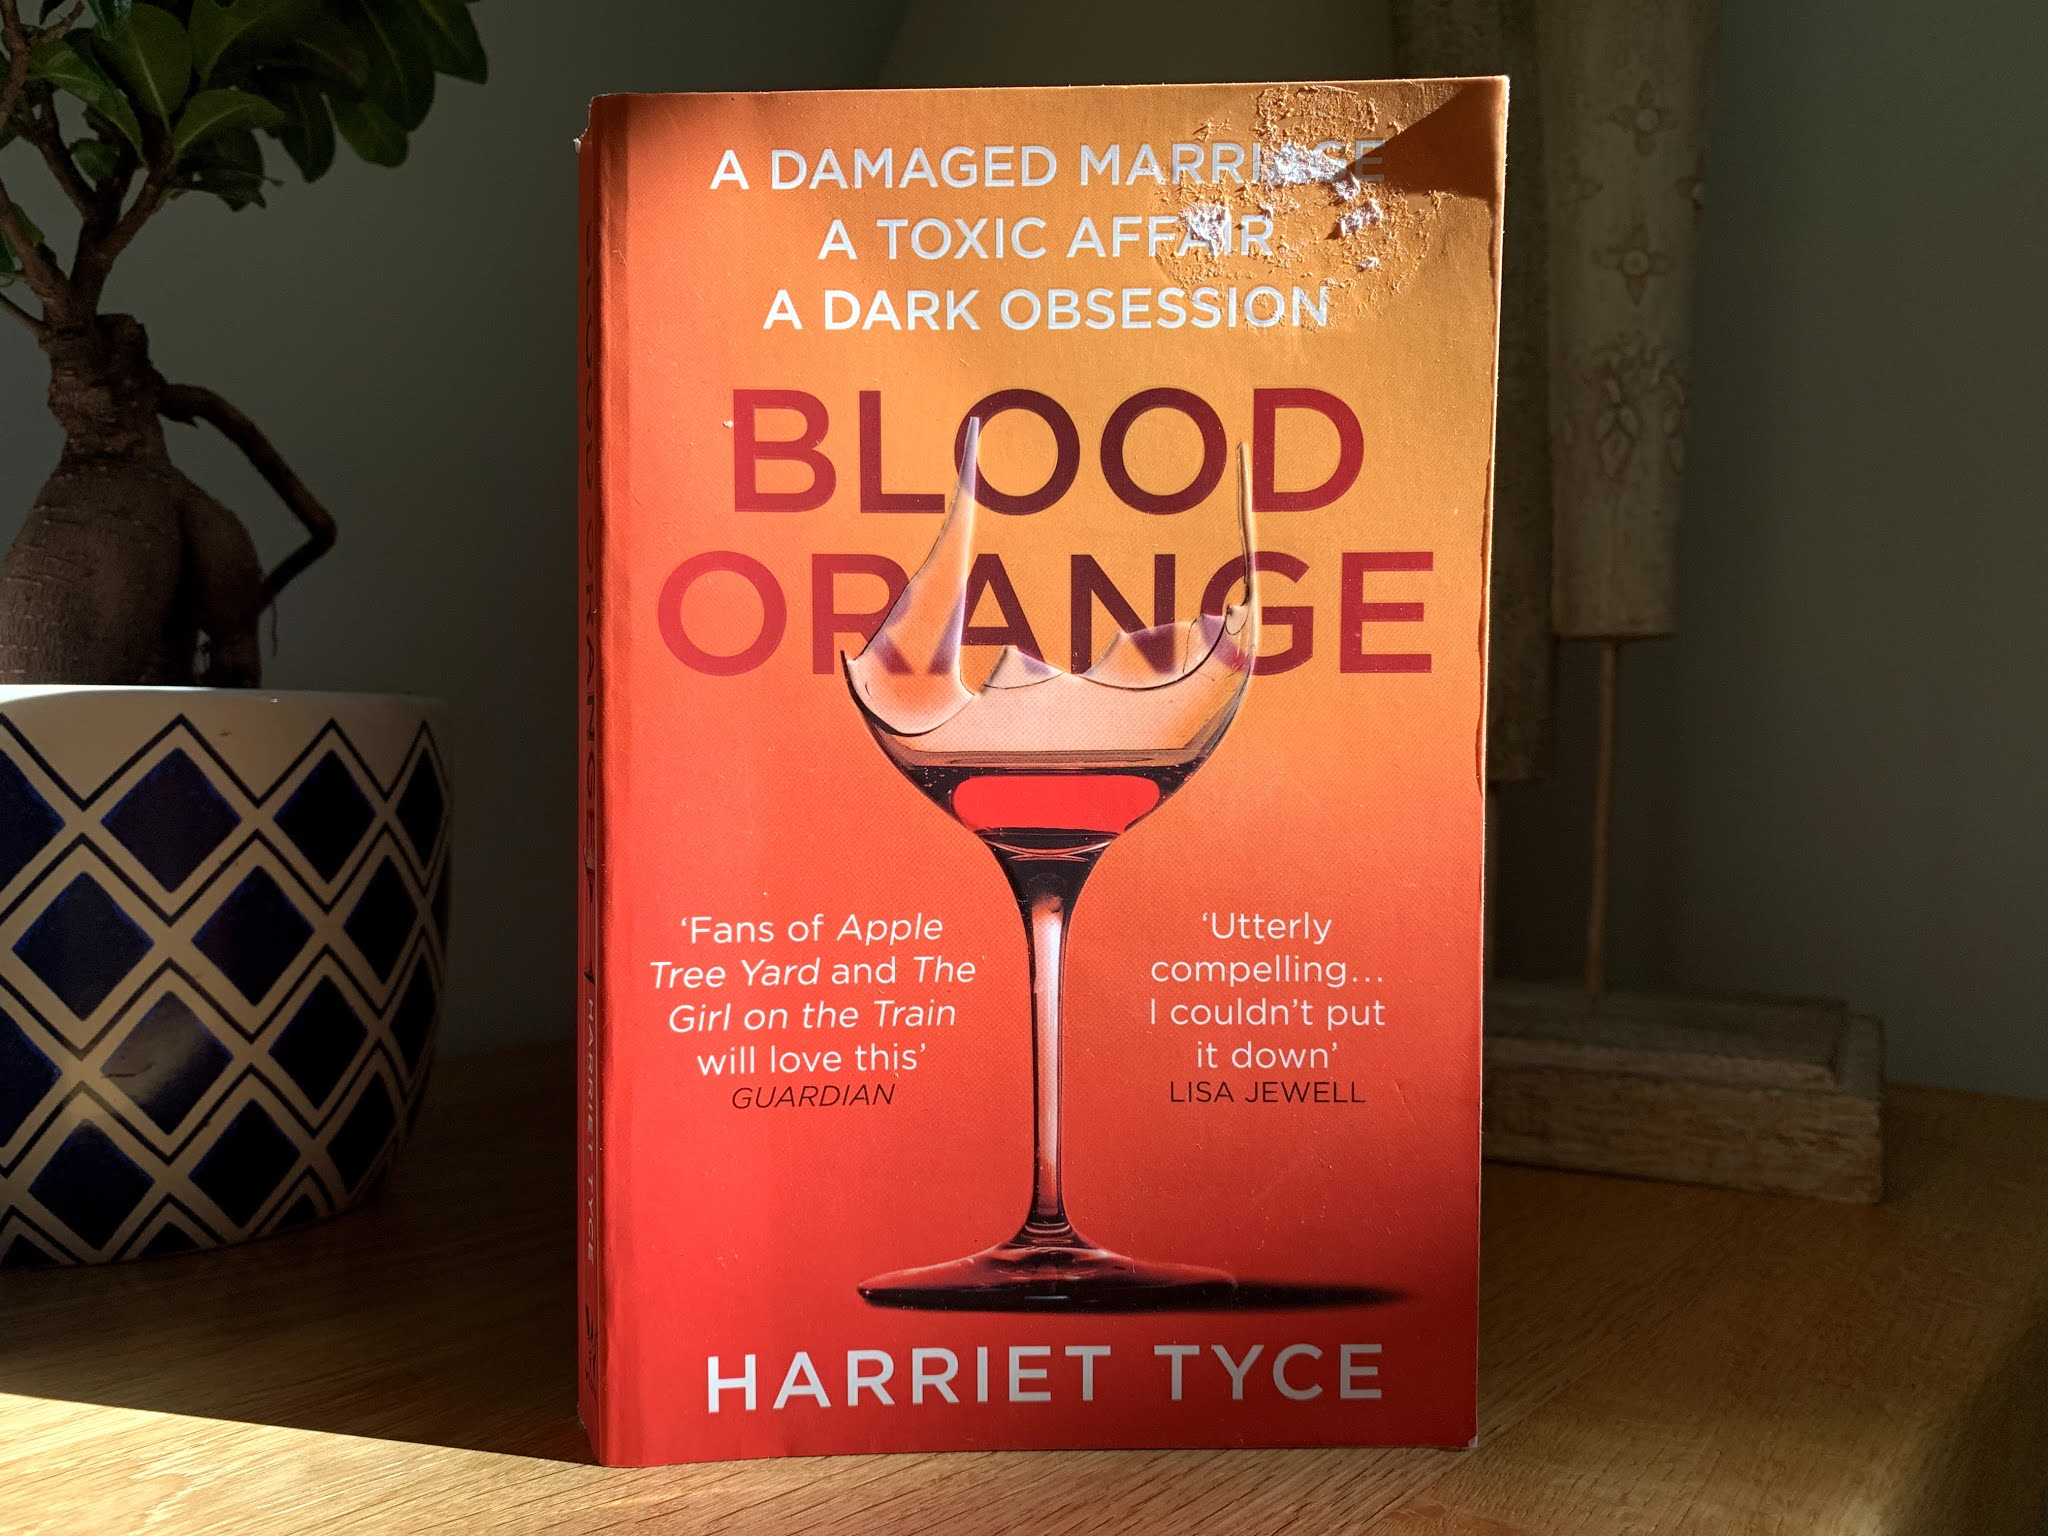 Blood Orange by Harriet Tyce on a shelf